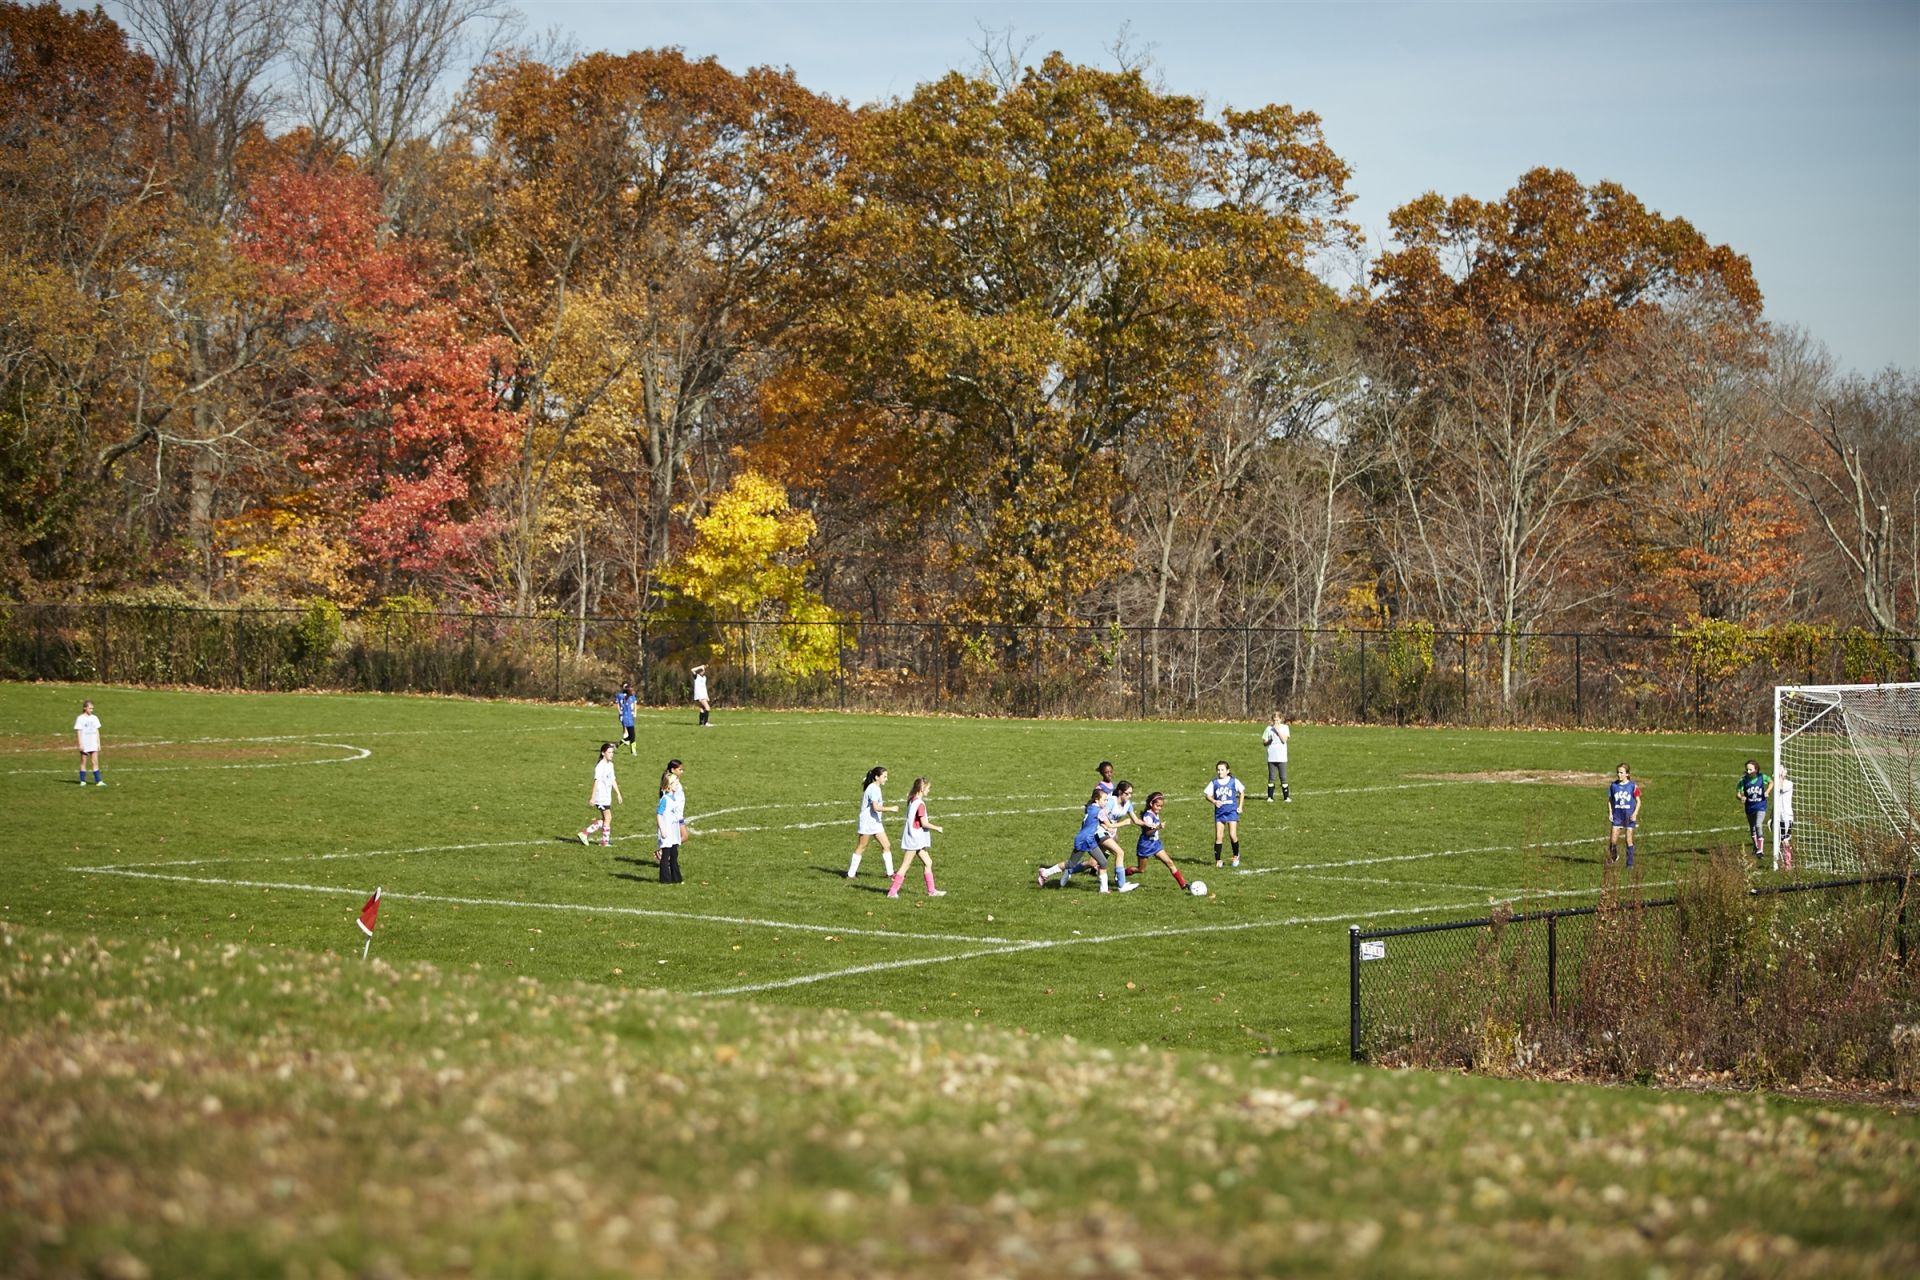 Five athletic fields host a variety of sports, physical education classes, field days and school events. Football, soccer, field hockey, softball, baseball, cross-country, and lacrosse, all take place on school fields.